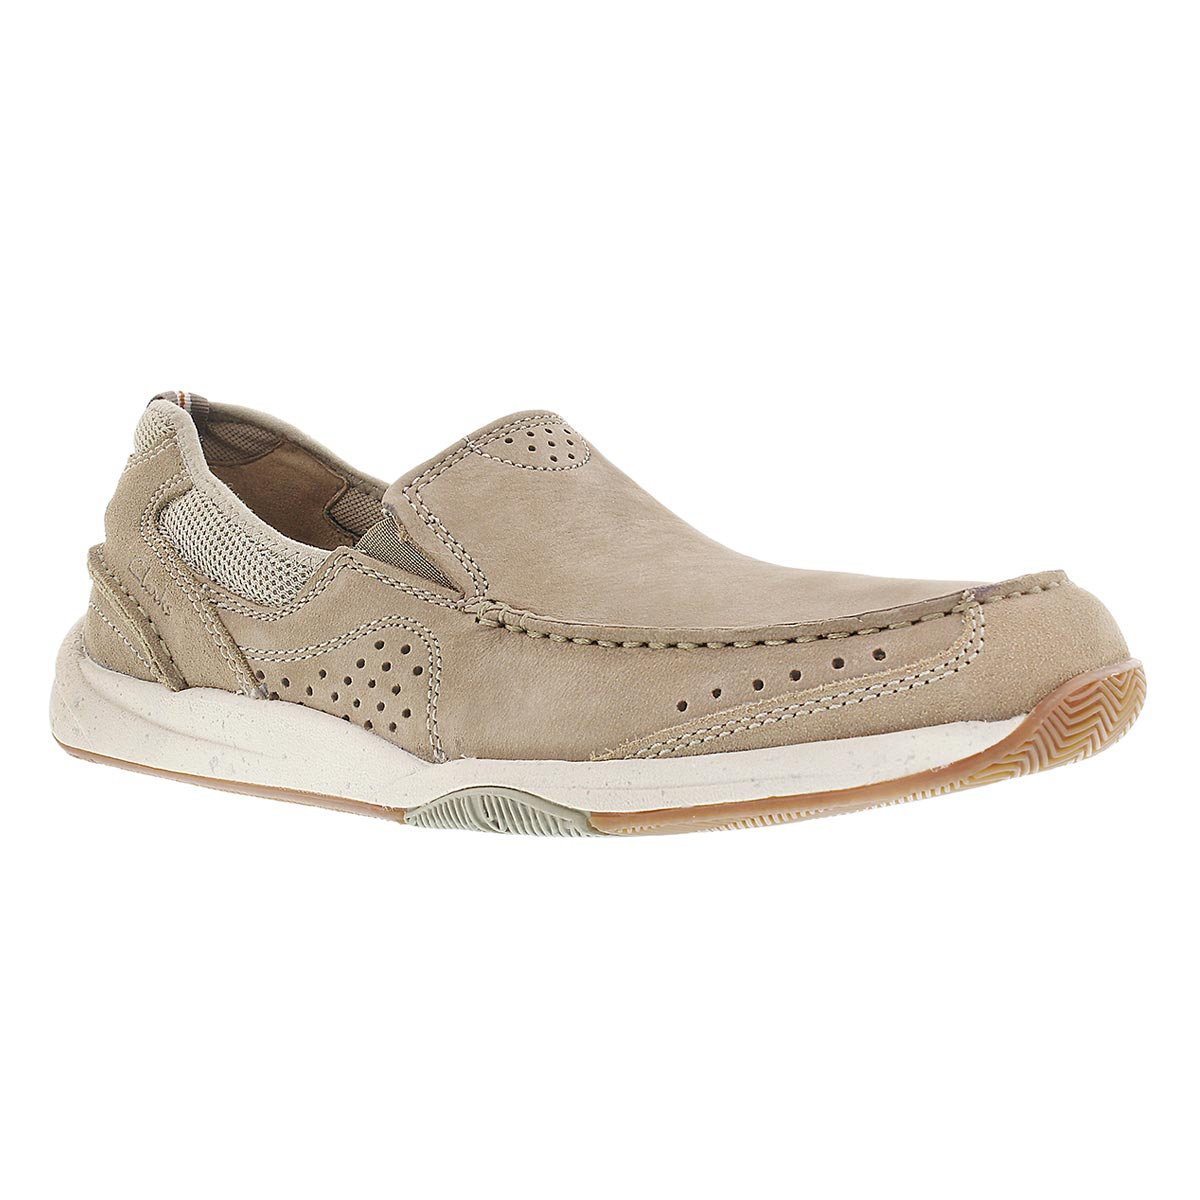 Men's ALLSTON FREE taupe slip-on casual shoes